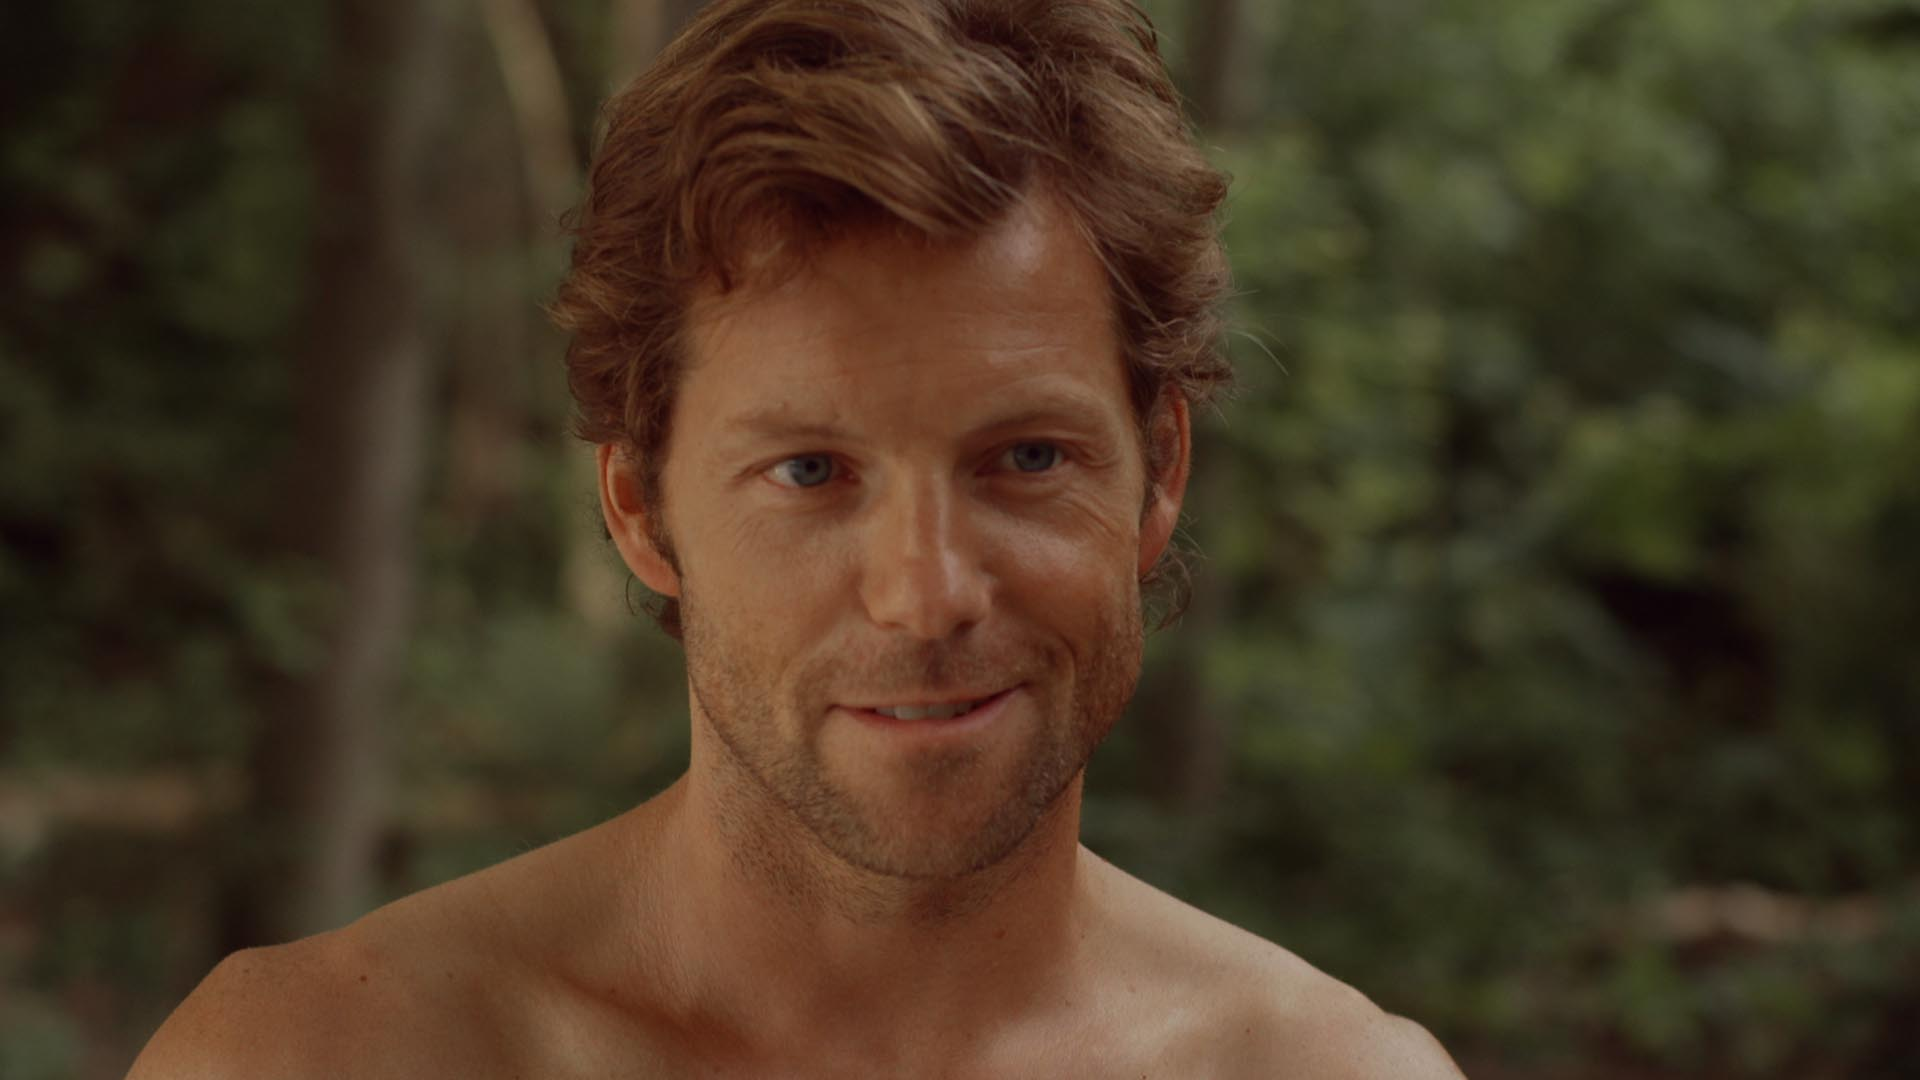 jamie bamber 2016jamie bamber twitter, jamie bamber wife, jamie bamber 2016, jamie bamber instagram, jamie bamber money, jamie bamber facebook, jamie bamber ncis, jamie bamber, jamie bamber band of brothers, jamie bamber interview, jamie bamber wiki, jamie bamber news, jamie bamber 2015, jamie bamber major crimes, jamie bamber wikipedia, jamie bamber photos, jamie bamber house, jamie bamber actor, jamie bamber leaving law and order, jamie bamber shirtless